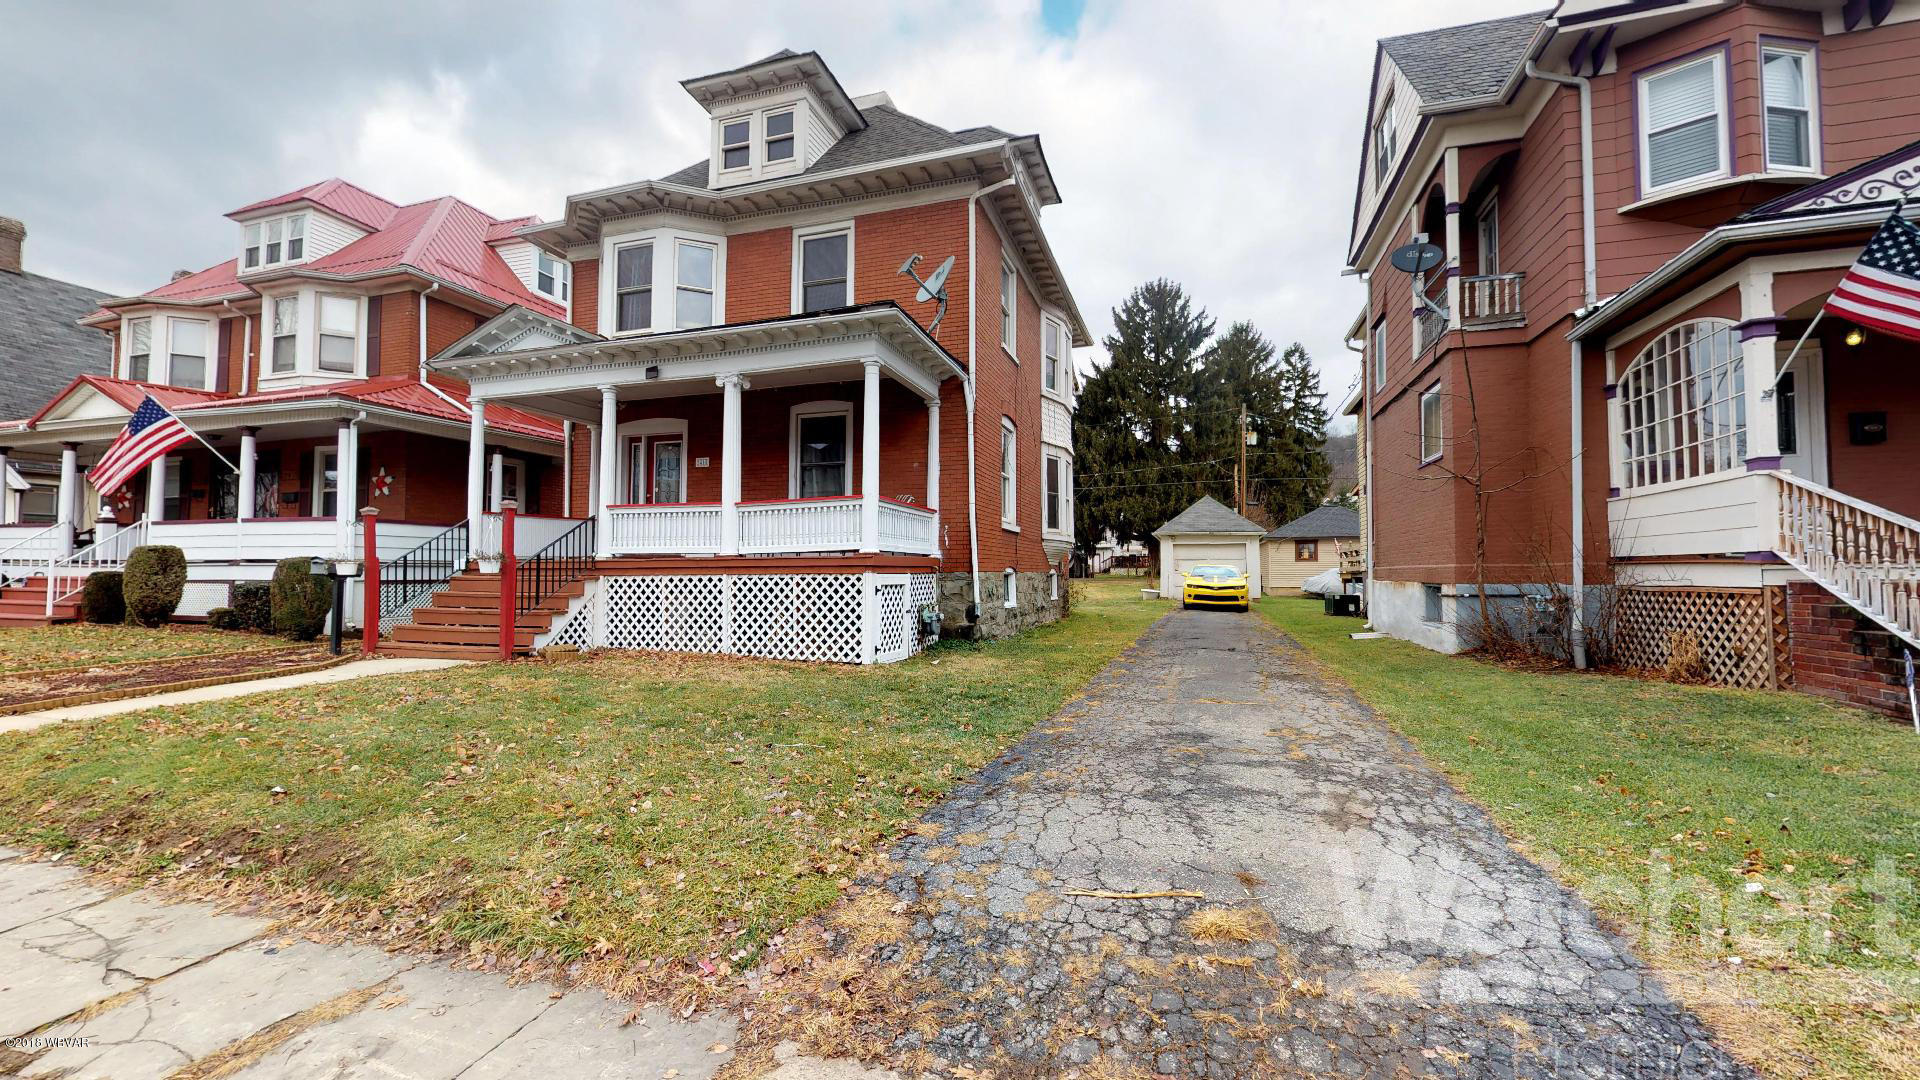 2410 FOURTH STREET,Williamsport,PA 17701,3 Bedrooms Bedrooms,2 BathroomsBathrooms,Residential,FOURTH,WB-86086